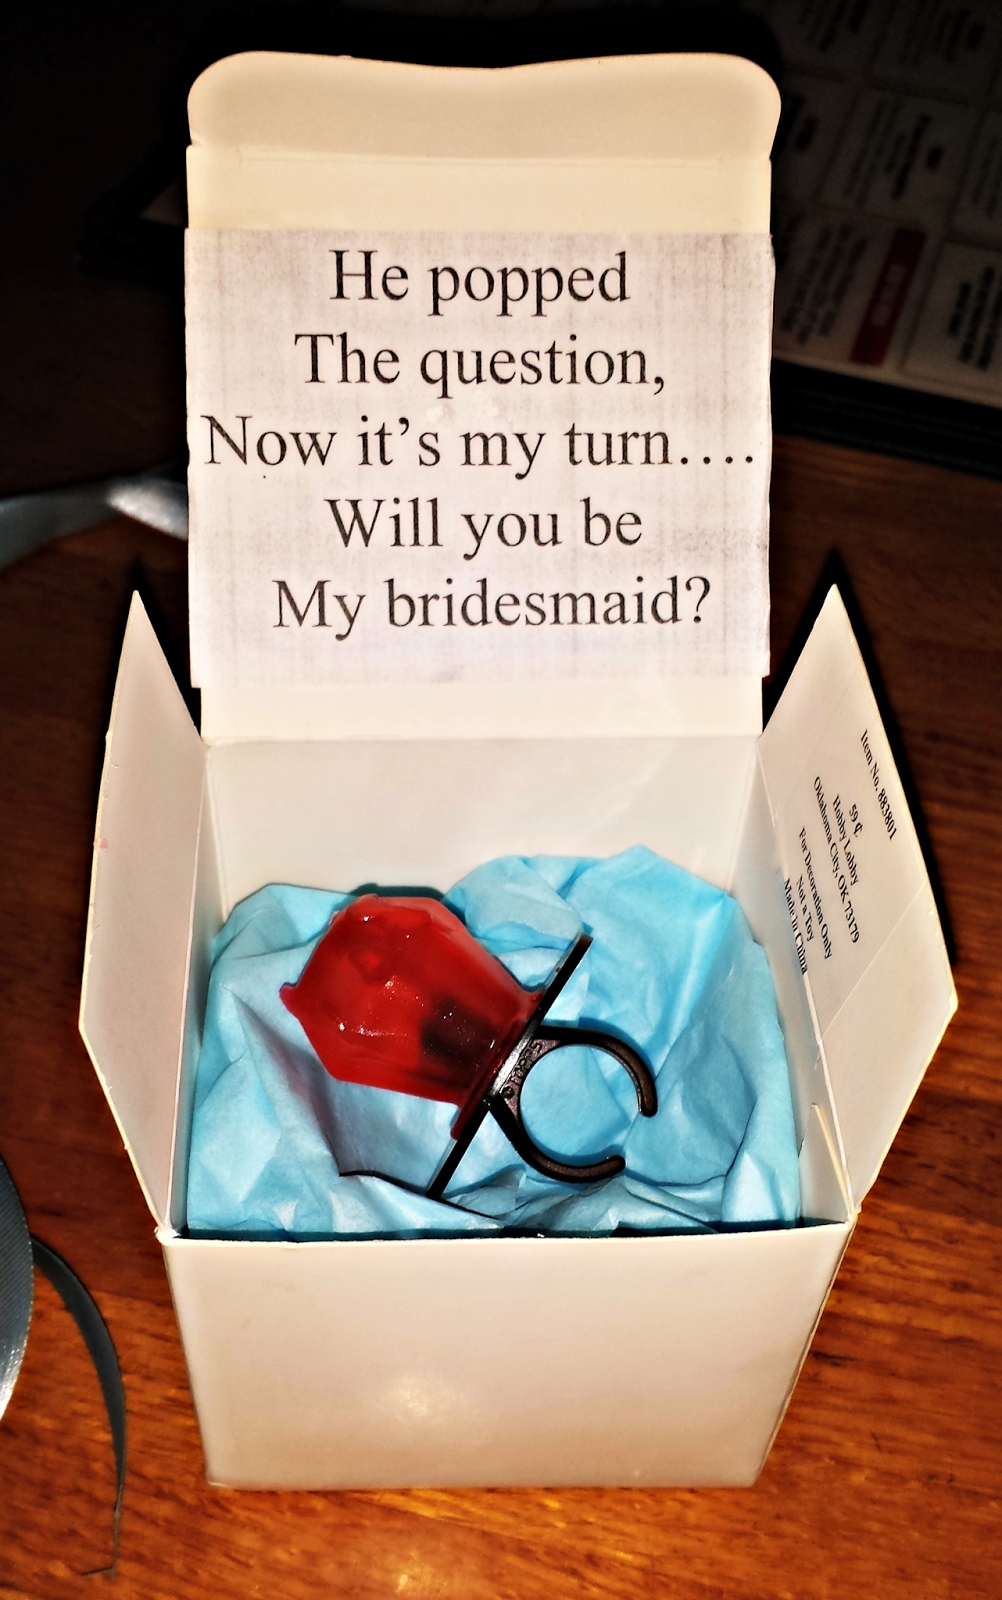 10 Wonderful Diy Will You Be My Bridesmaid Ideas he popped the questionnow its my turn will you be my bridesmaid 2 2020